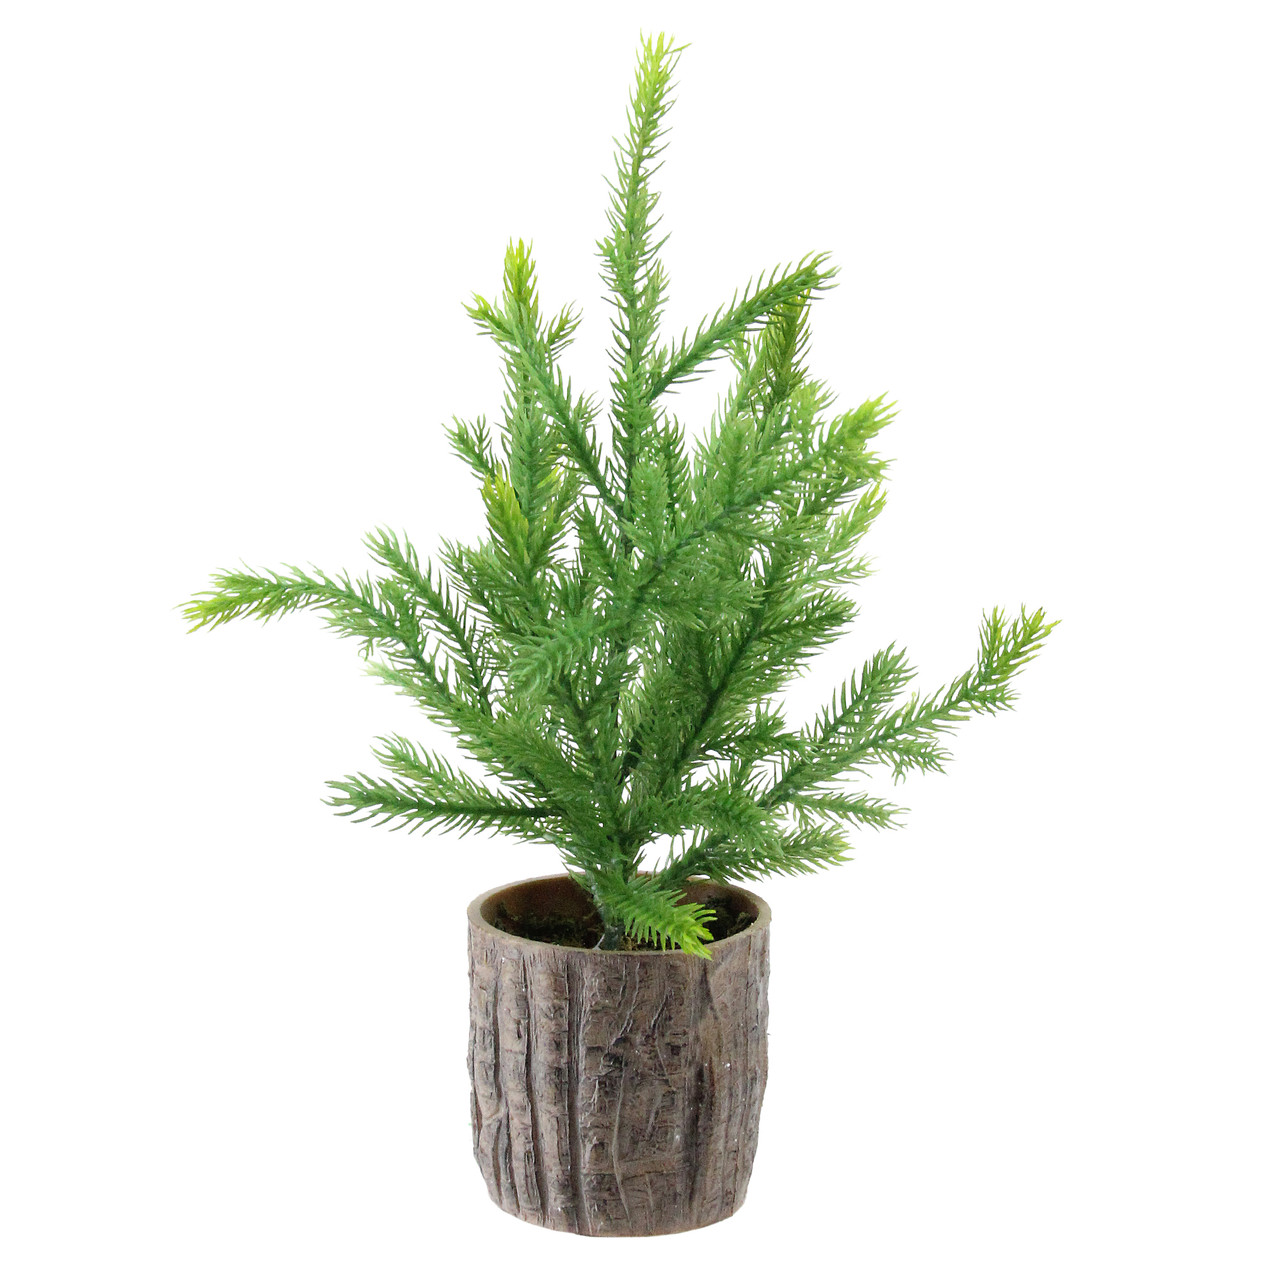 12 artificial pine christmas tree in faux wooden pot 32626952 - Christmas Tree In A Pot